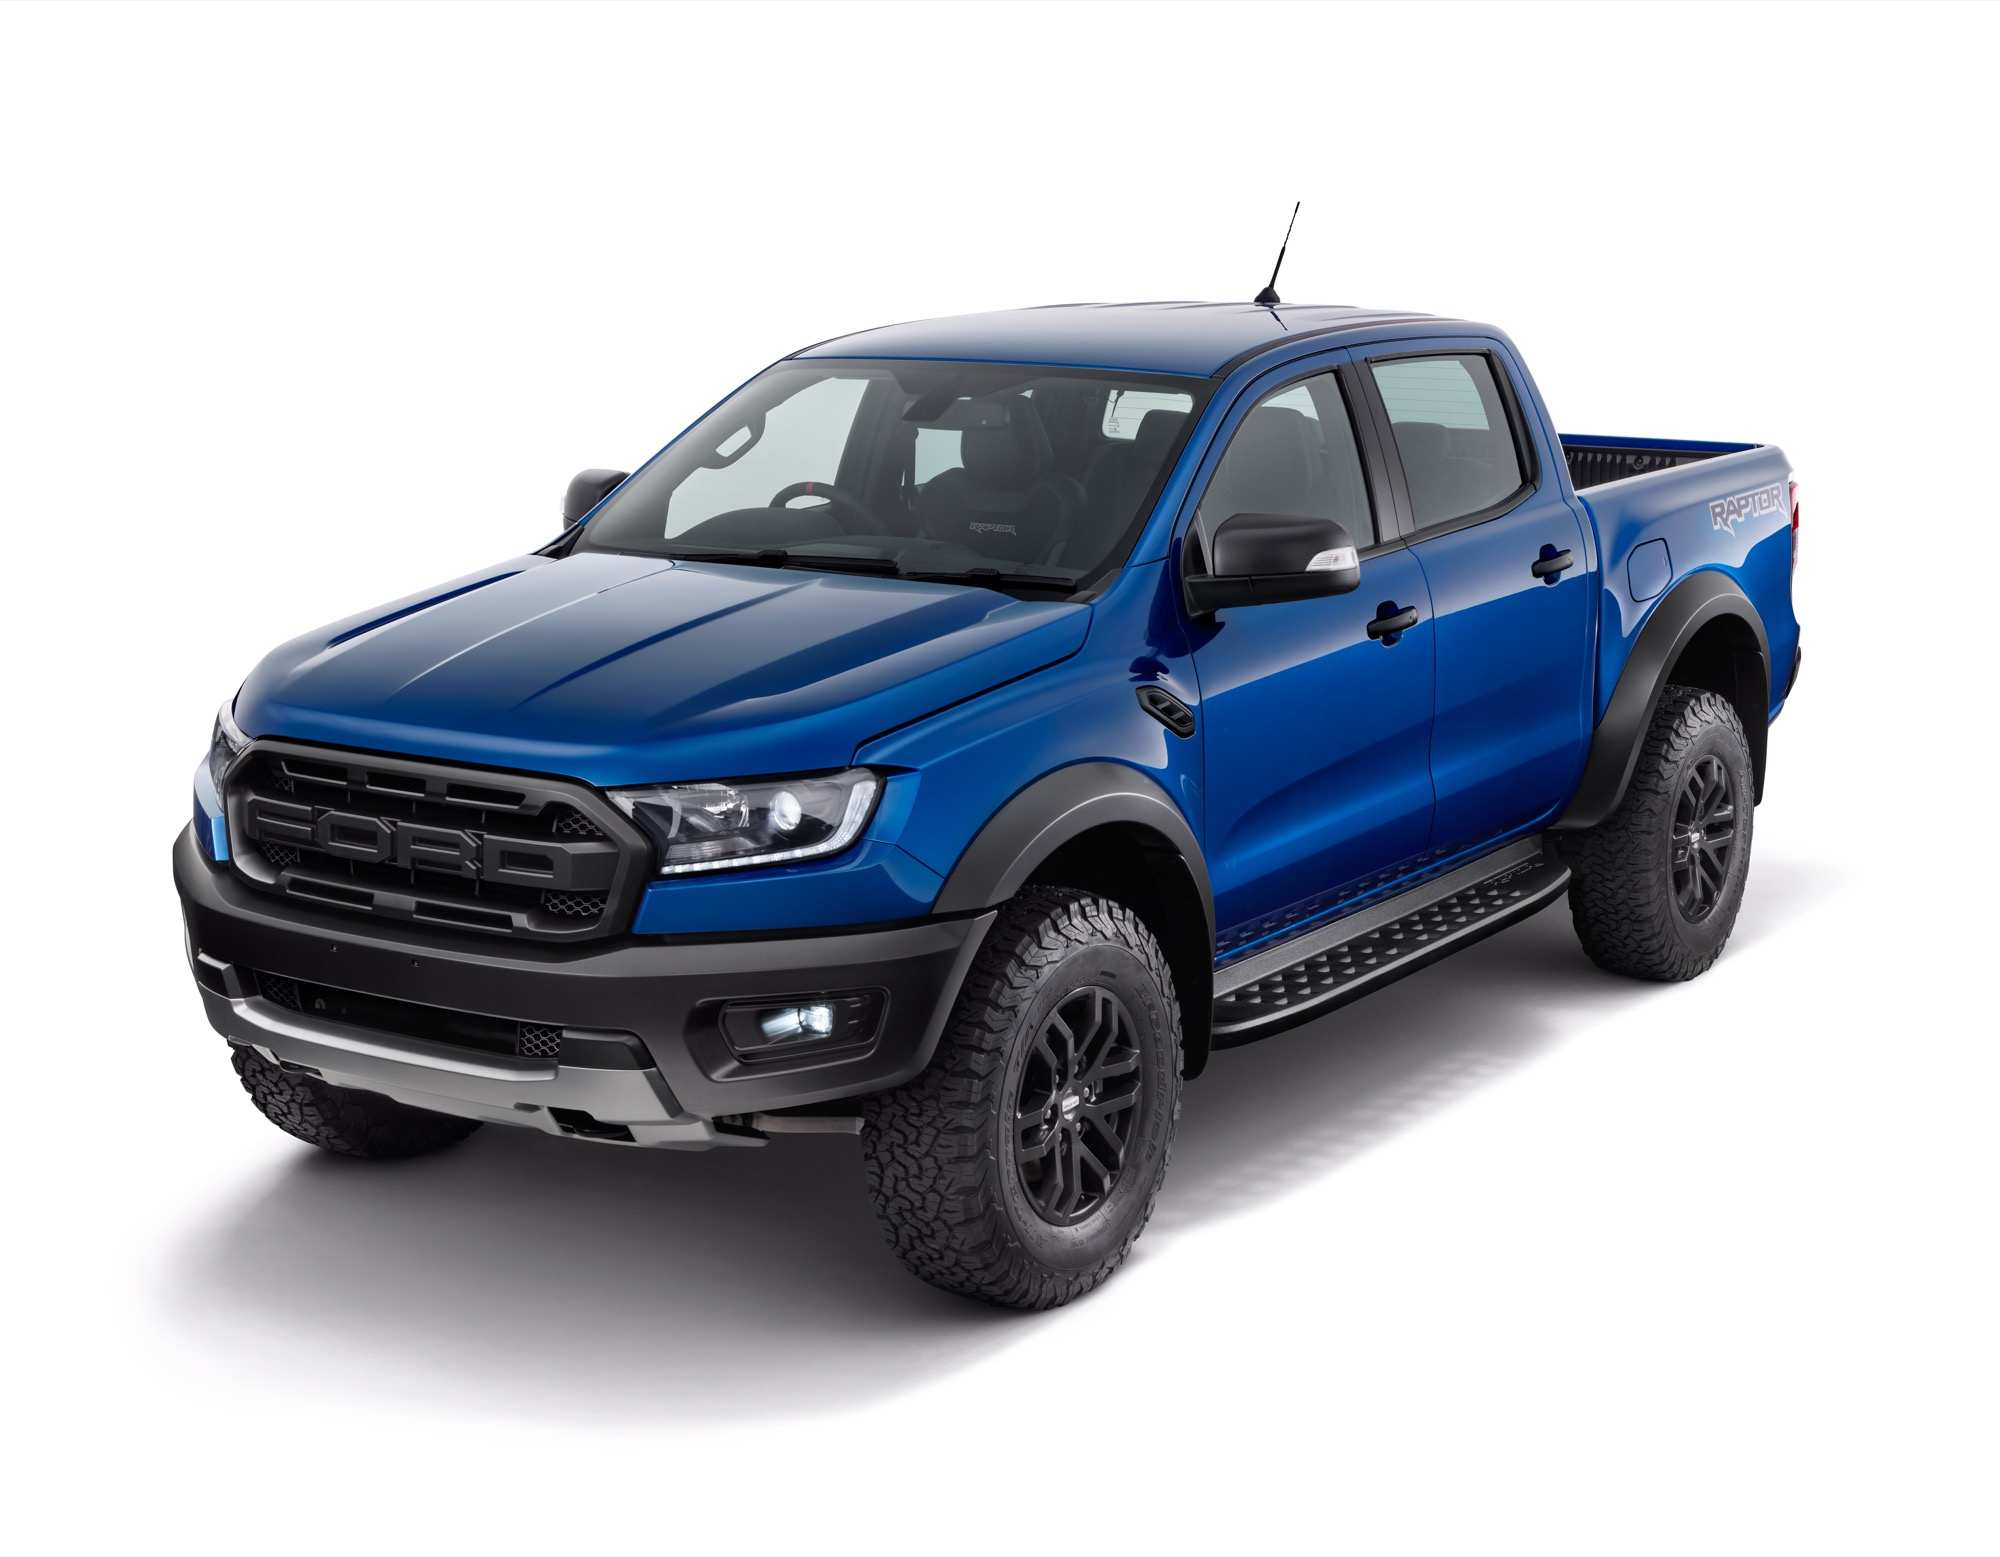 45 Best 2019 Ford Ranger Engine Options Rumors